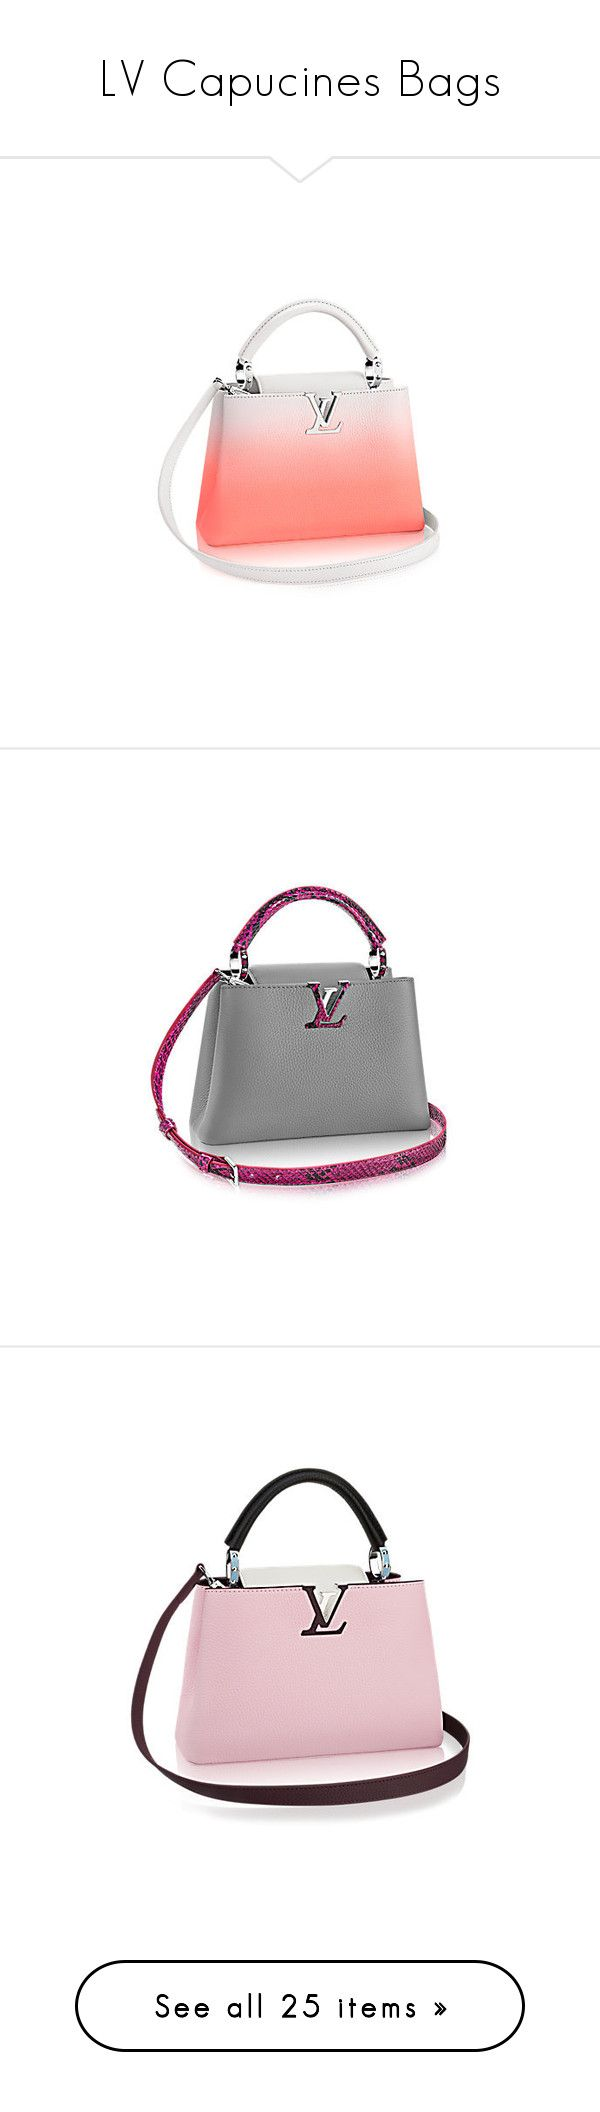 """""""LV Capucines Bags"""" by missy-smallen ❤ liked on Polyvore featuring bags, handbags, shoulder bags, leather shoulder bag, pink cross body purse, pink leather purse, leather crossbody purse, cross-body handbag, pink sequin purse and leather purses"""